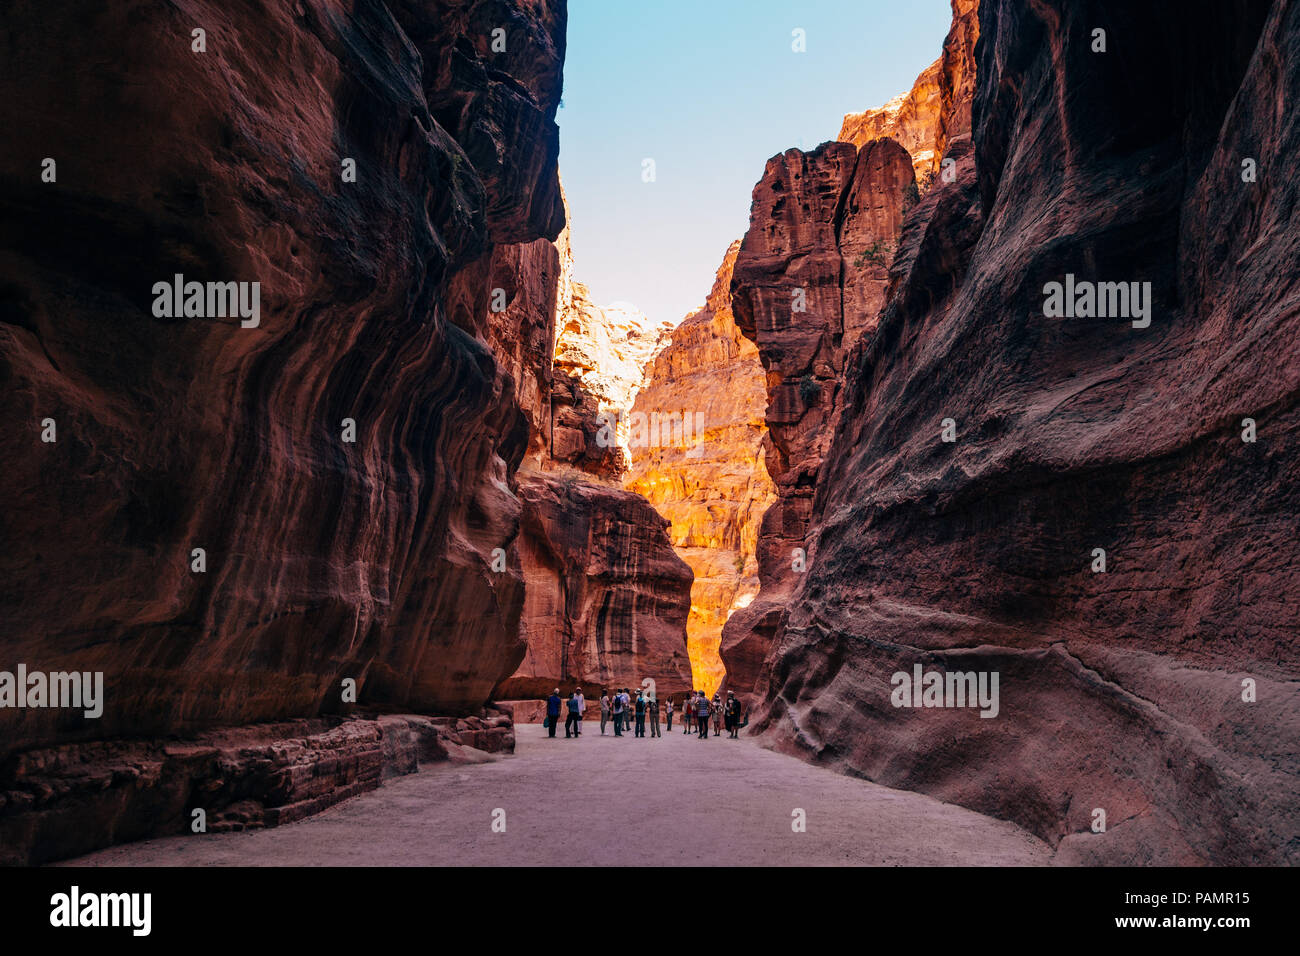 a tour group walks down the main path into Petra, Jordan. The canyon was carved by the rock splitting during an earthquake - Stock Image